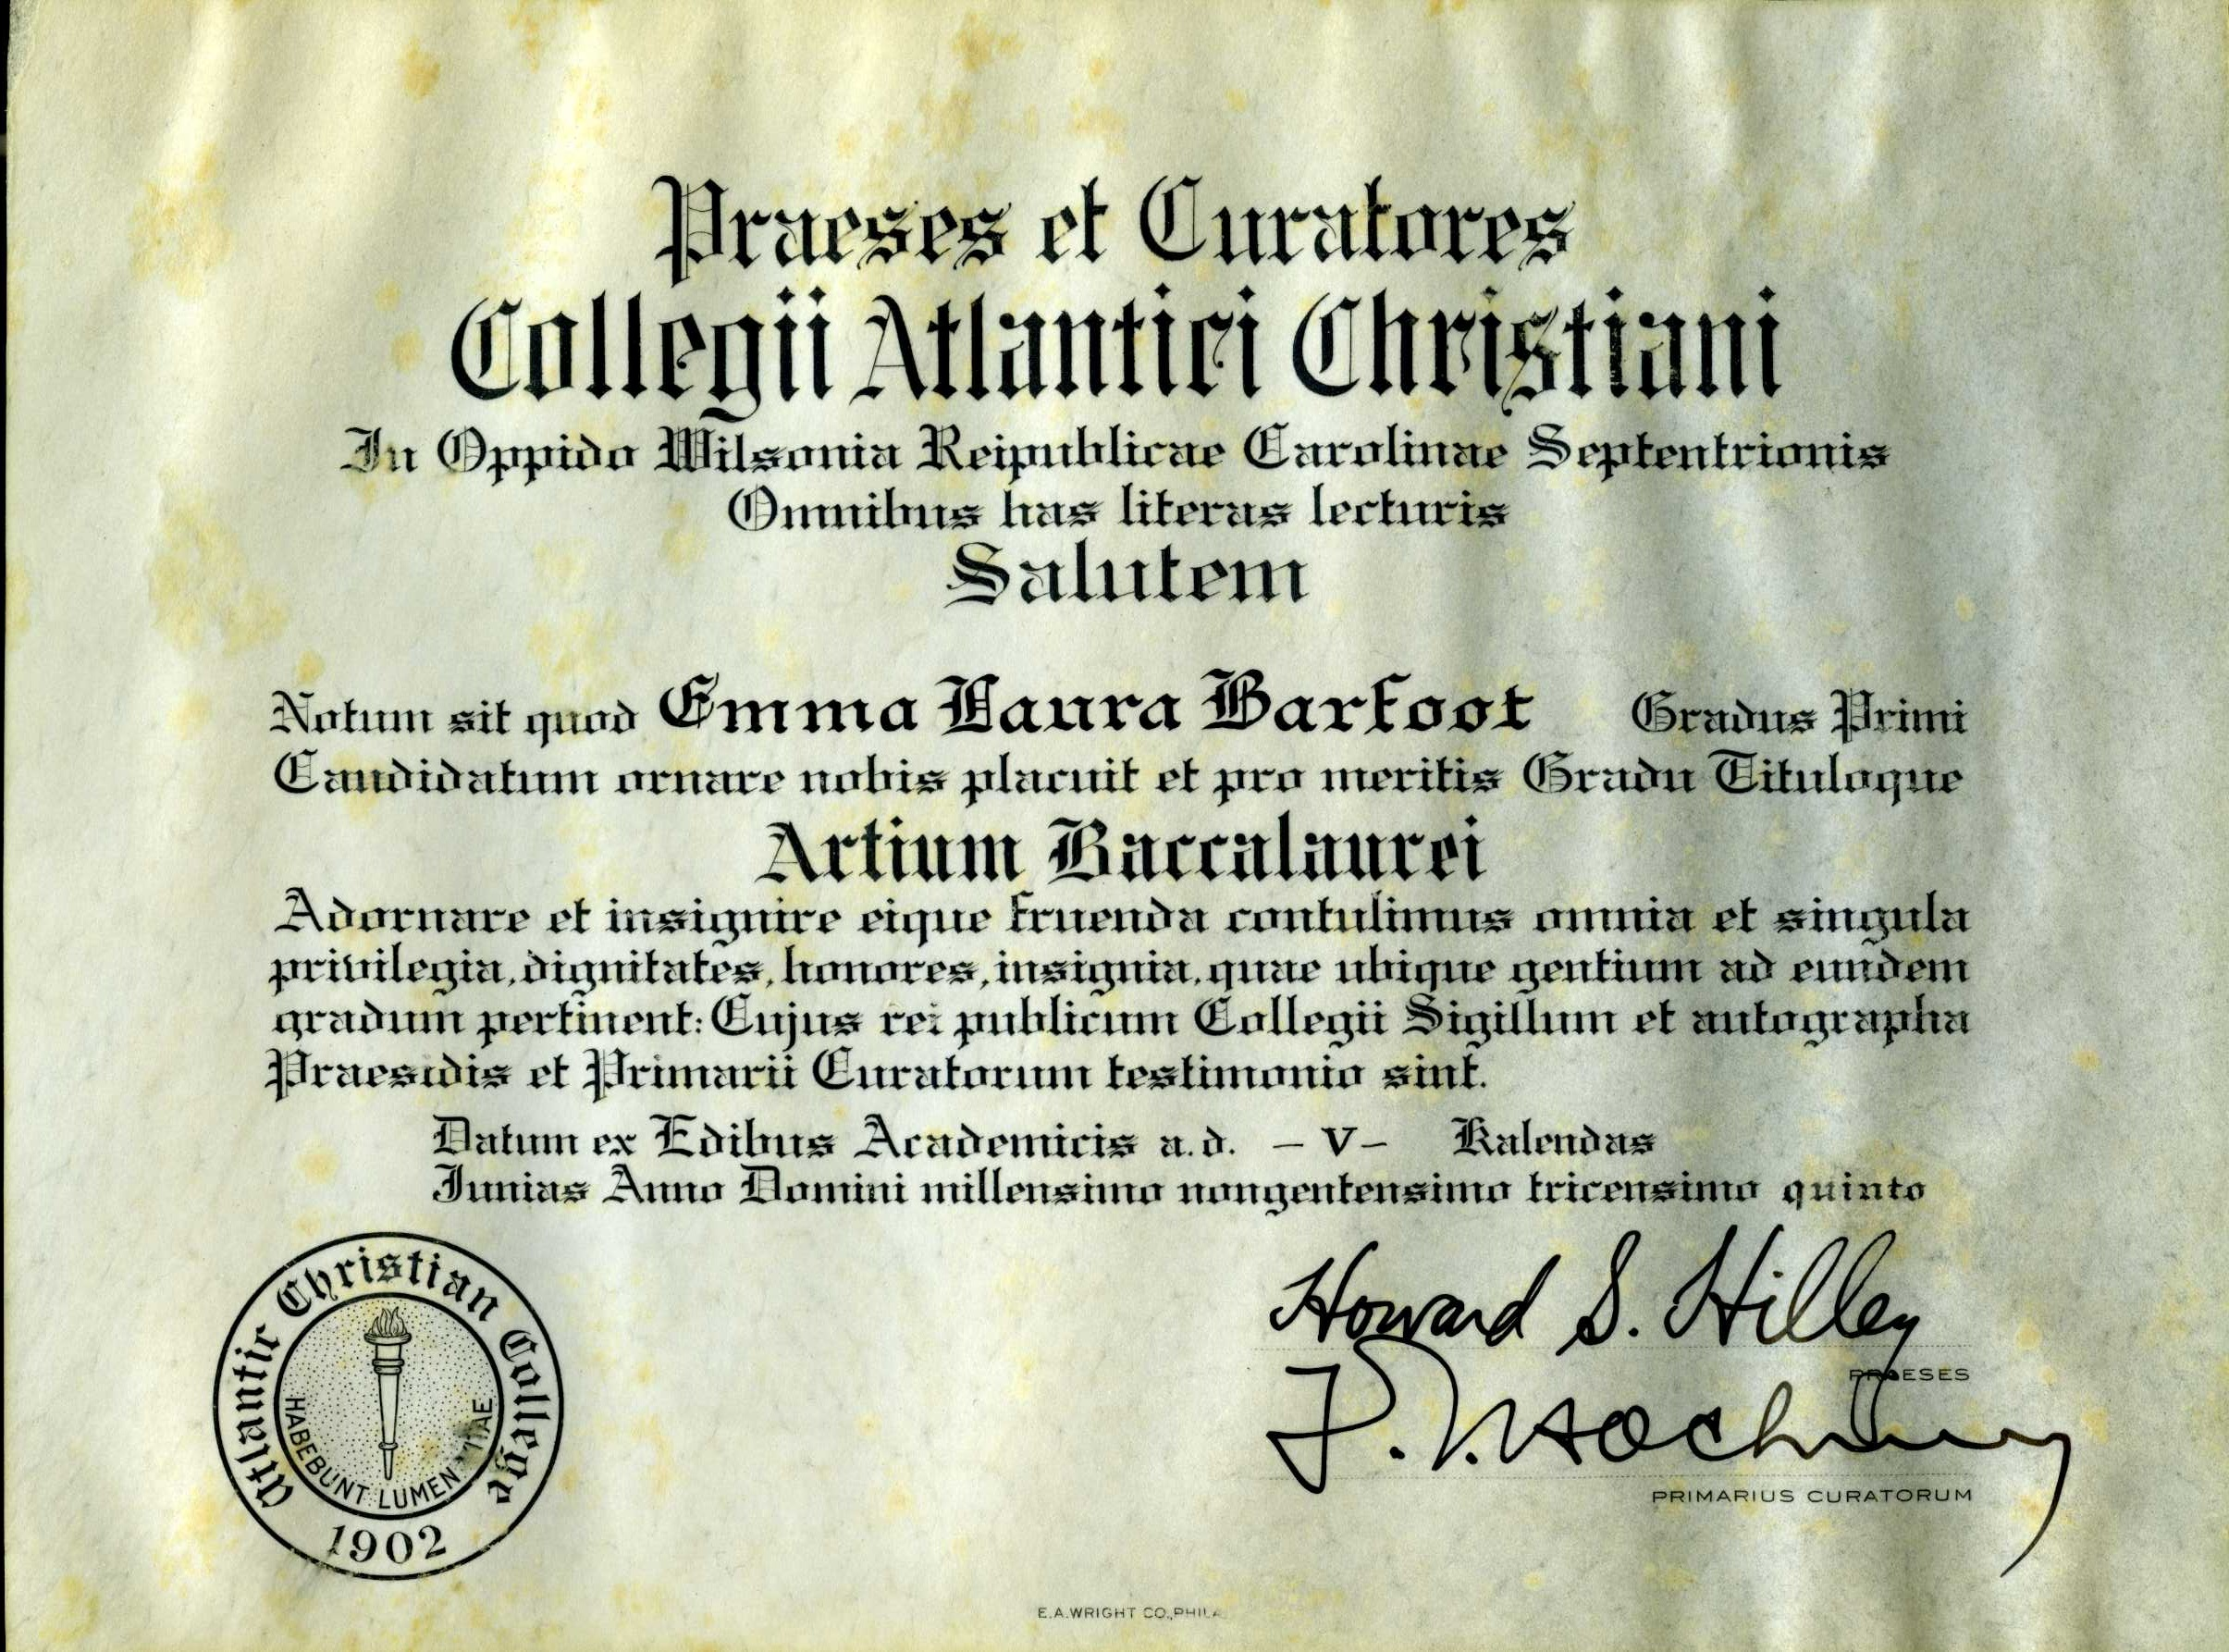 Miniature diploma of Emma Laura Barfoot, 1935